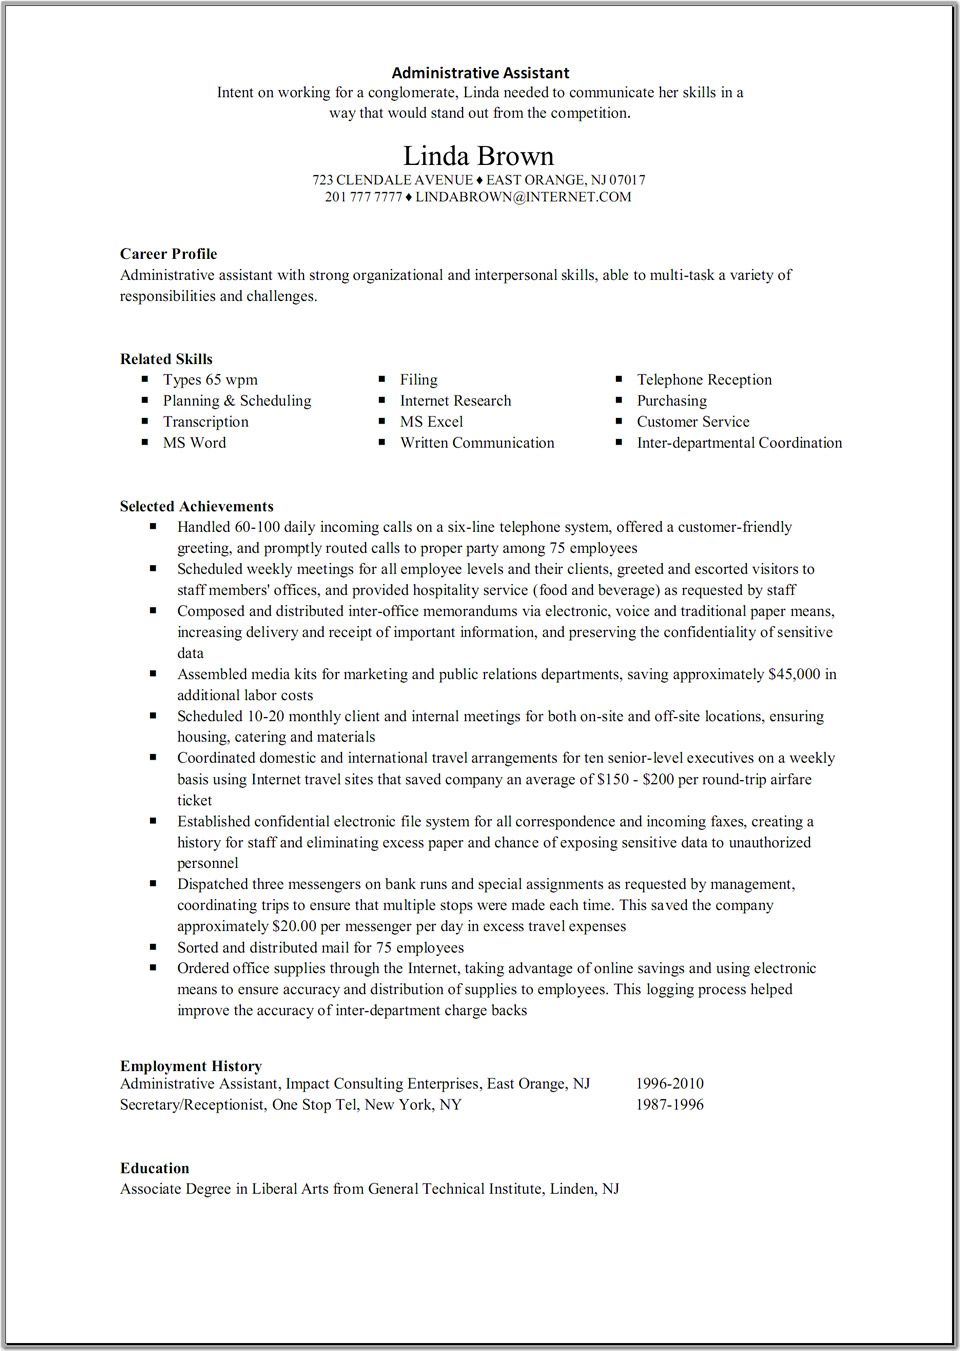 best ideas about administrative assistant work 17 best ideas about administrative assistant work office organization administrative assistant resume and microsoft excel